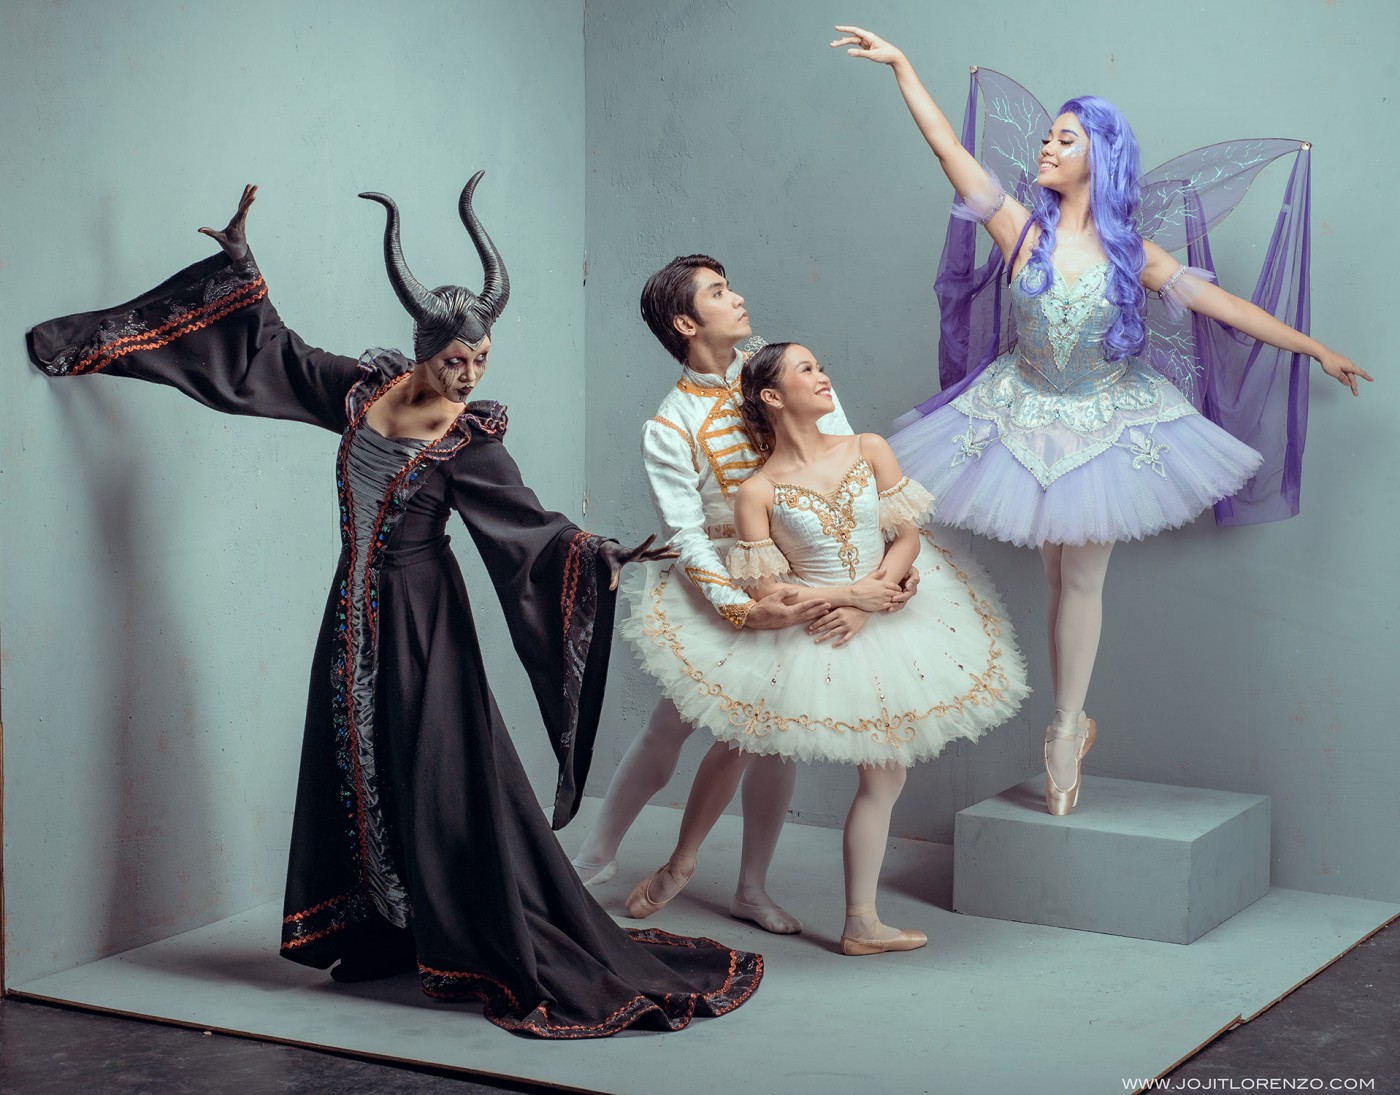 Principal dancers Romeo Peralta (Prince Desiré) and Jasmine Pia Dames (Princess Aurora) are joined by company artists Emma Harris (Maleficent) and Marinette Franco (Lilac Fairy) in Lisa Macuja-Elizalde's  Sleeping Beauty,  Ballet Manila's Christmas presentation.